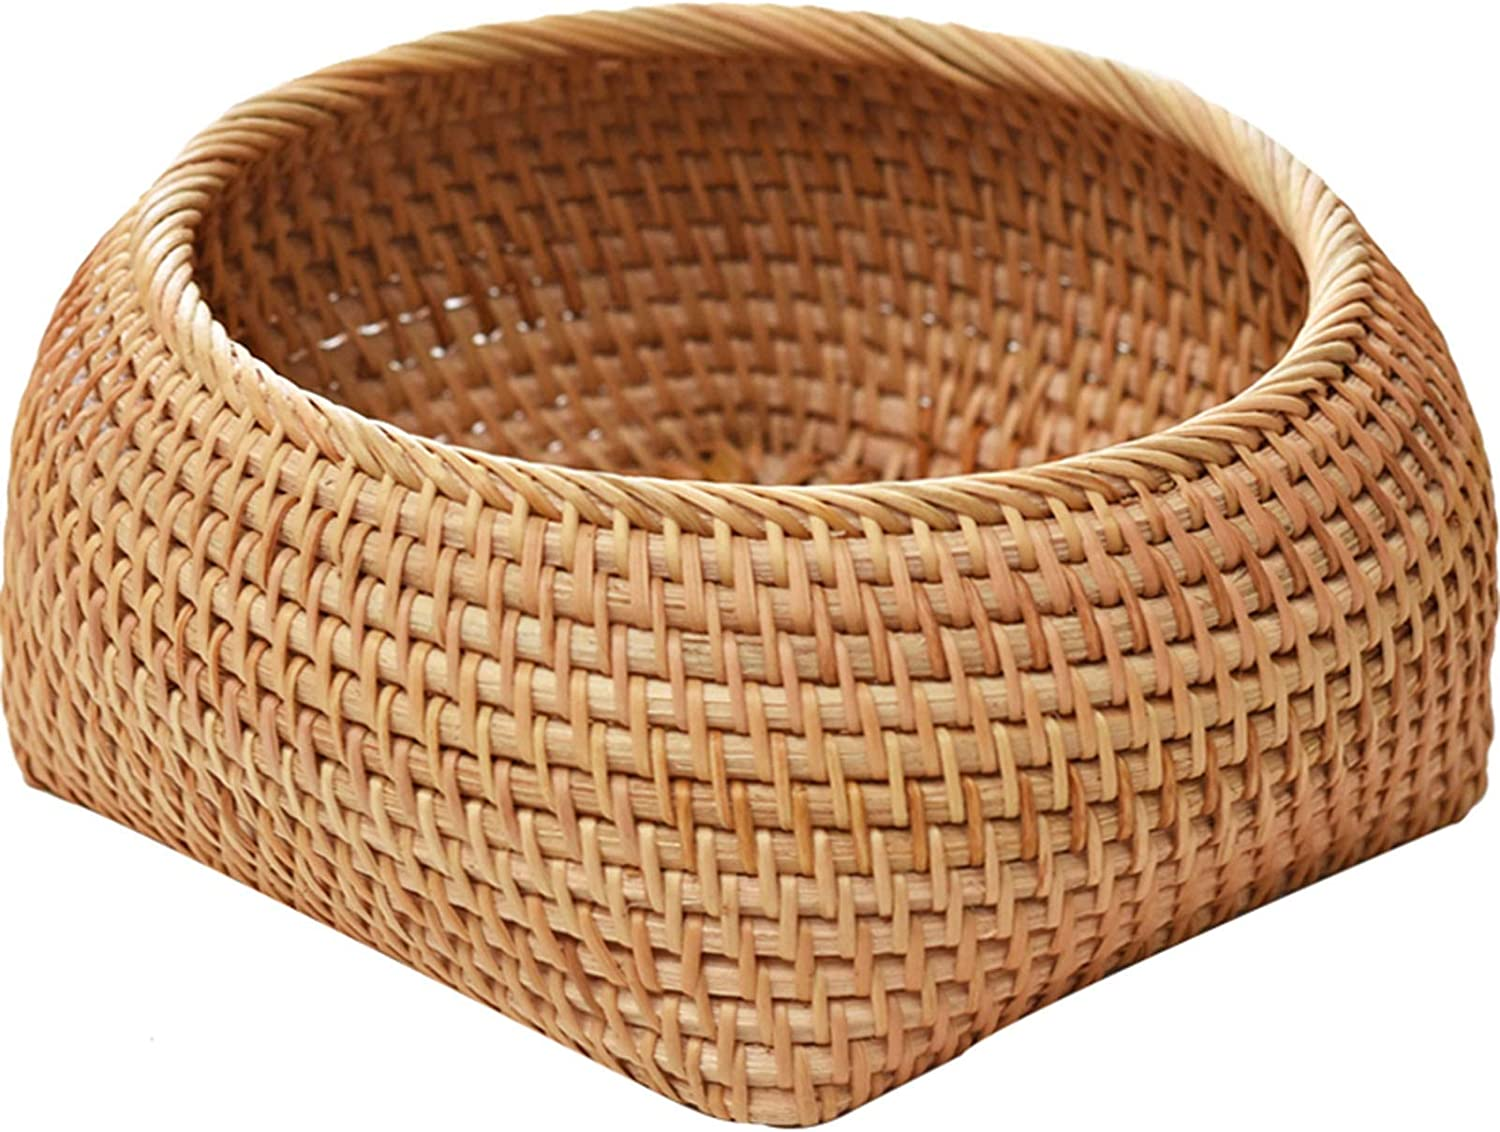 LIU Handmade Rattan Popularity Bread Candy Basket Fo Store to Used Kitchen Free shipping / New